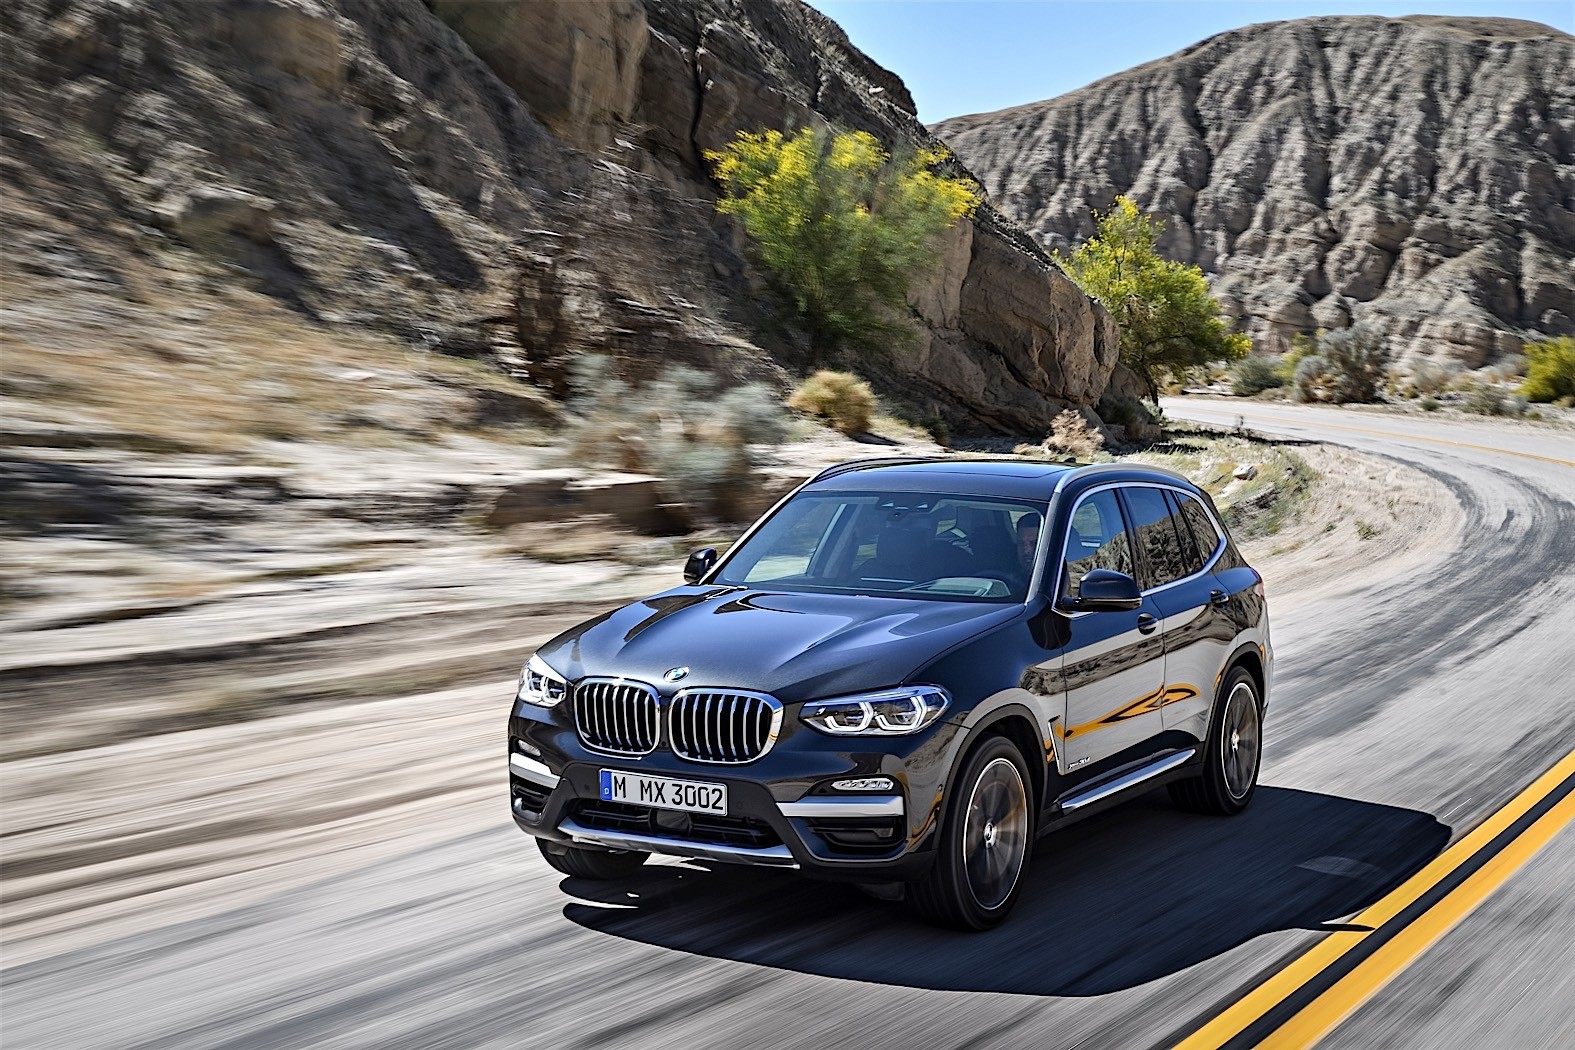 2018 bmw x3 g01 confirmed for production in china autoevolution. Black Bedroom Furniture Sets. Home Design Ideas